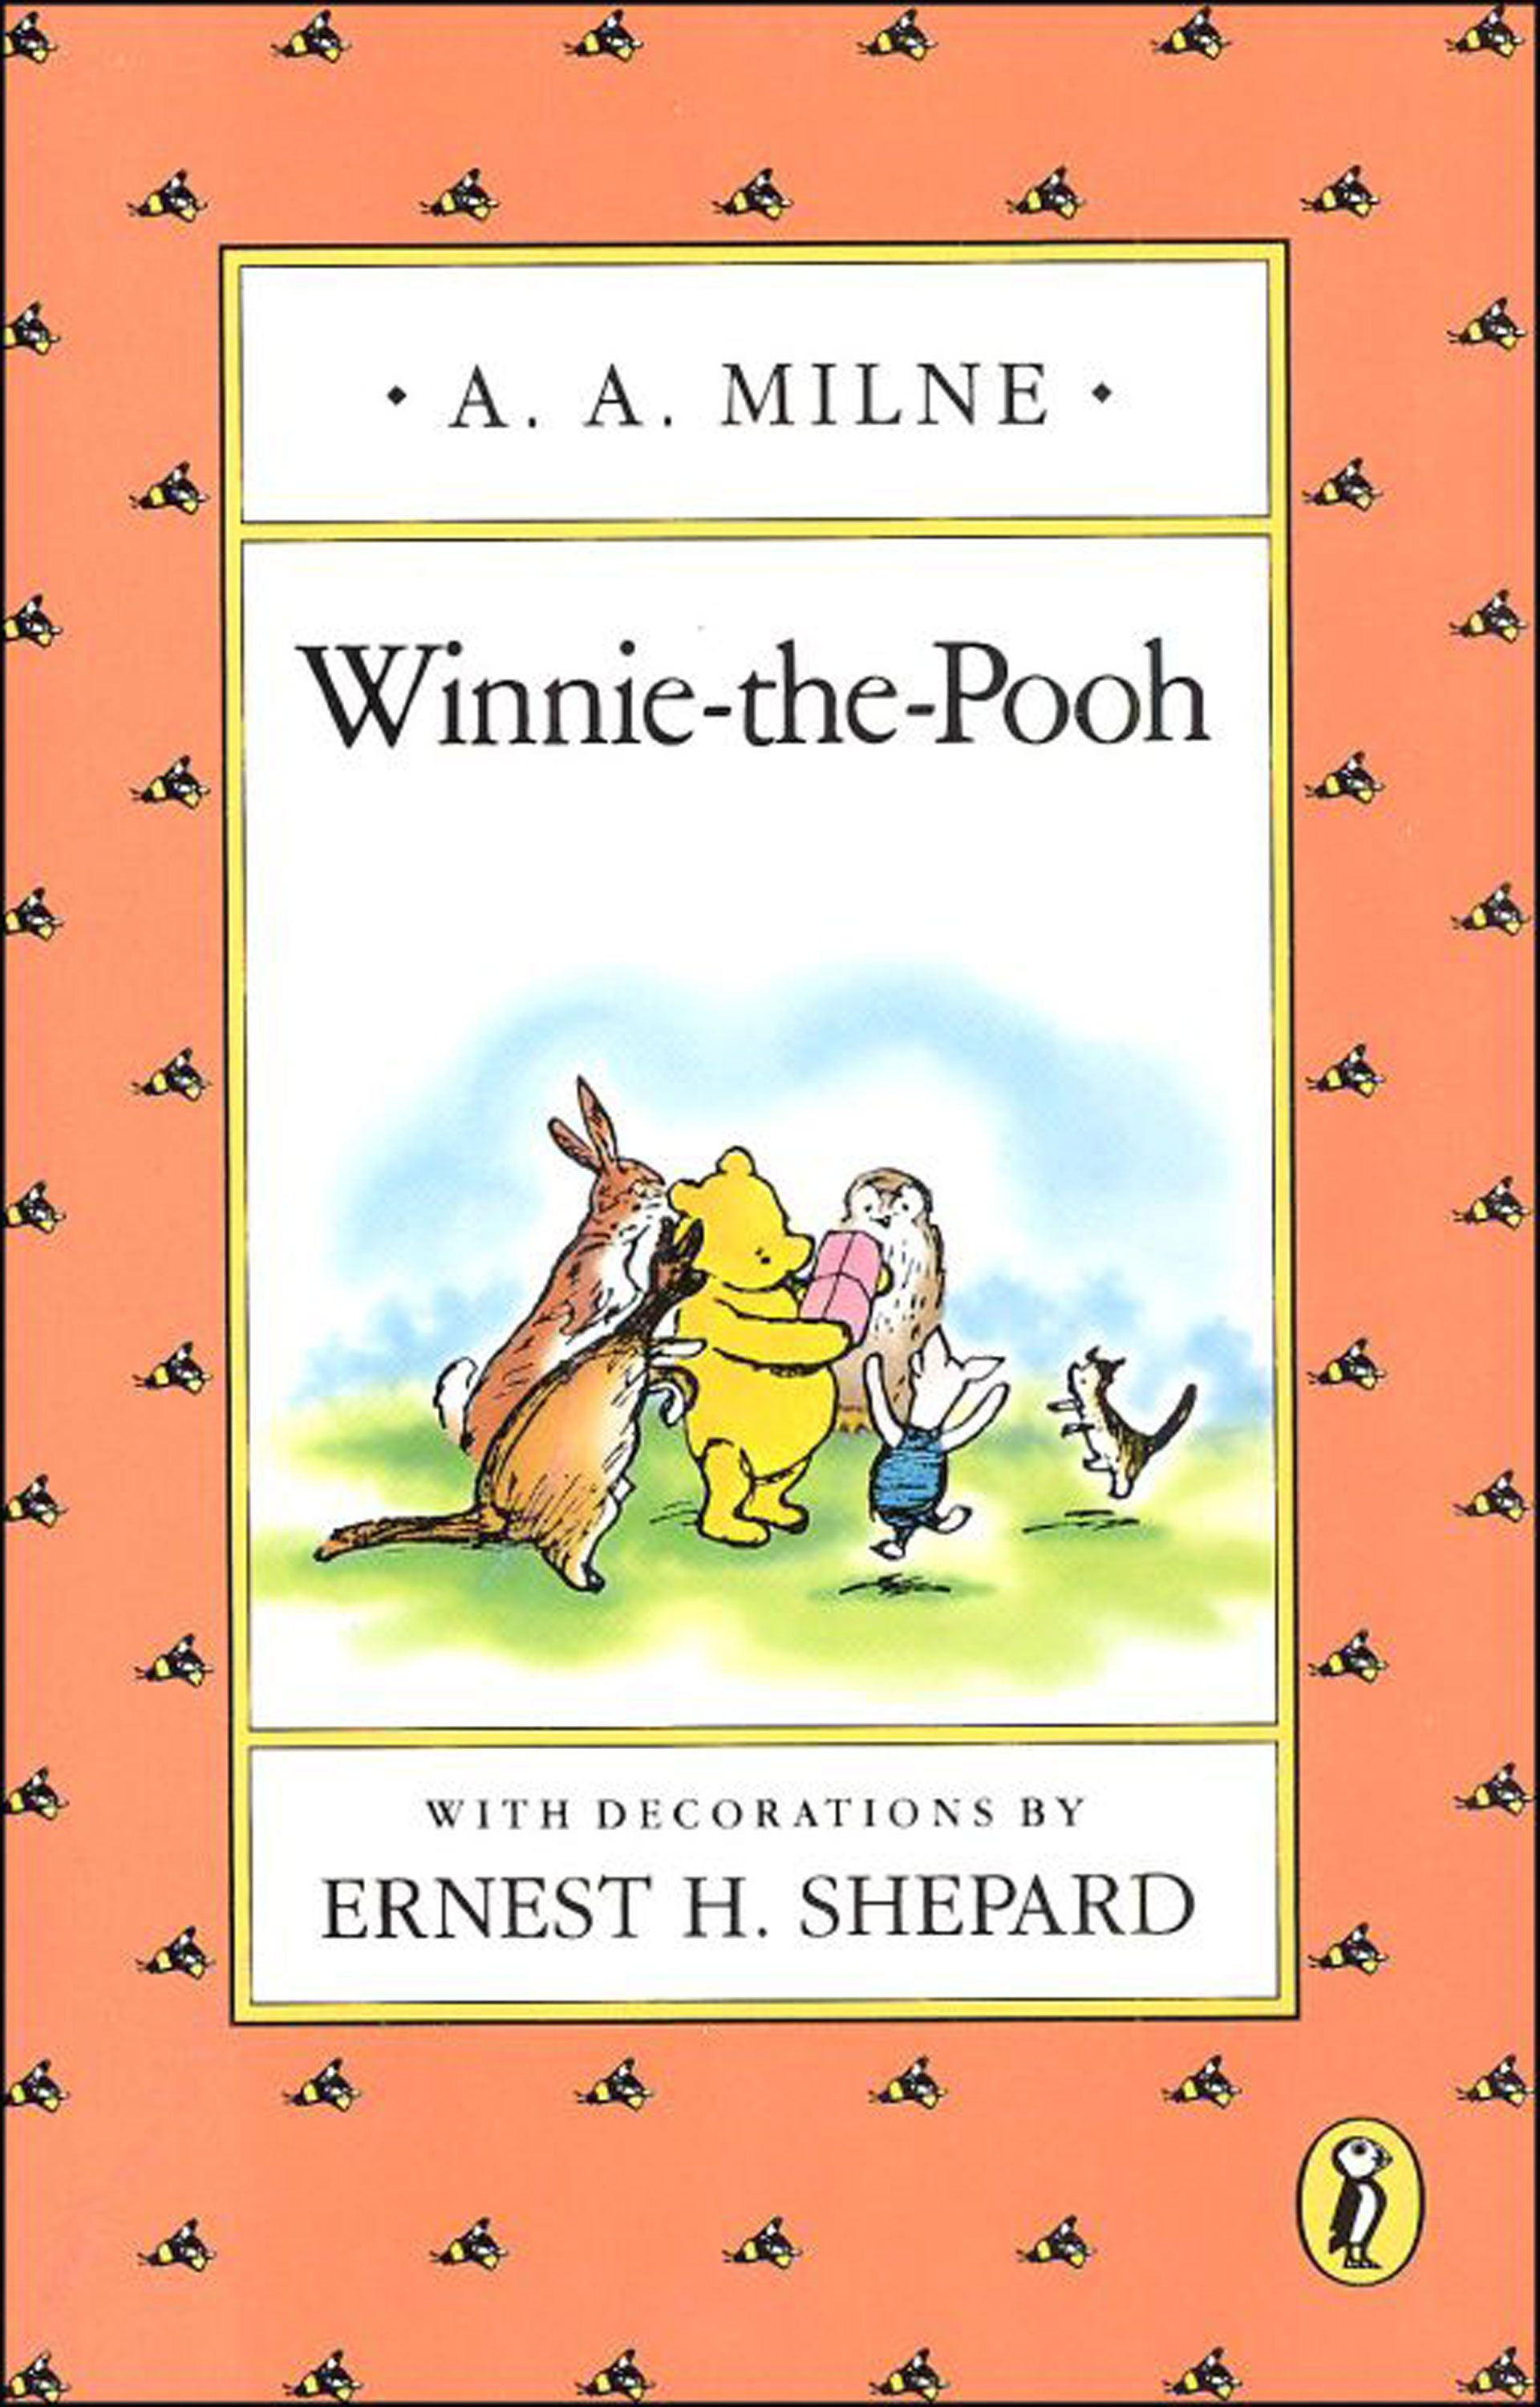 Quotes About Friendship Winnie The Pooh 20 Best Quotes From Children's Books  Sweet Children's Book Quotes